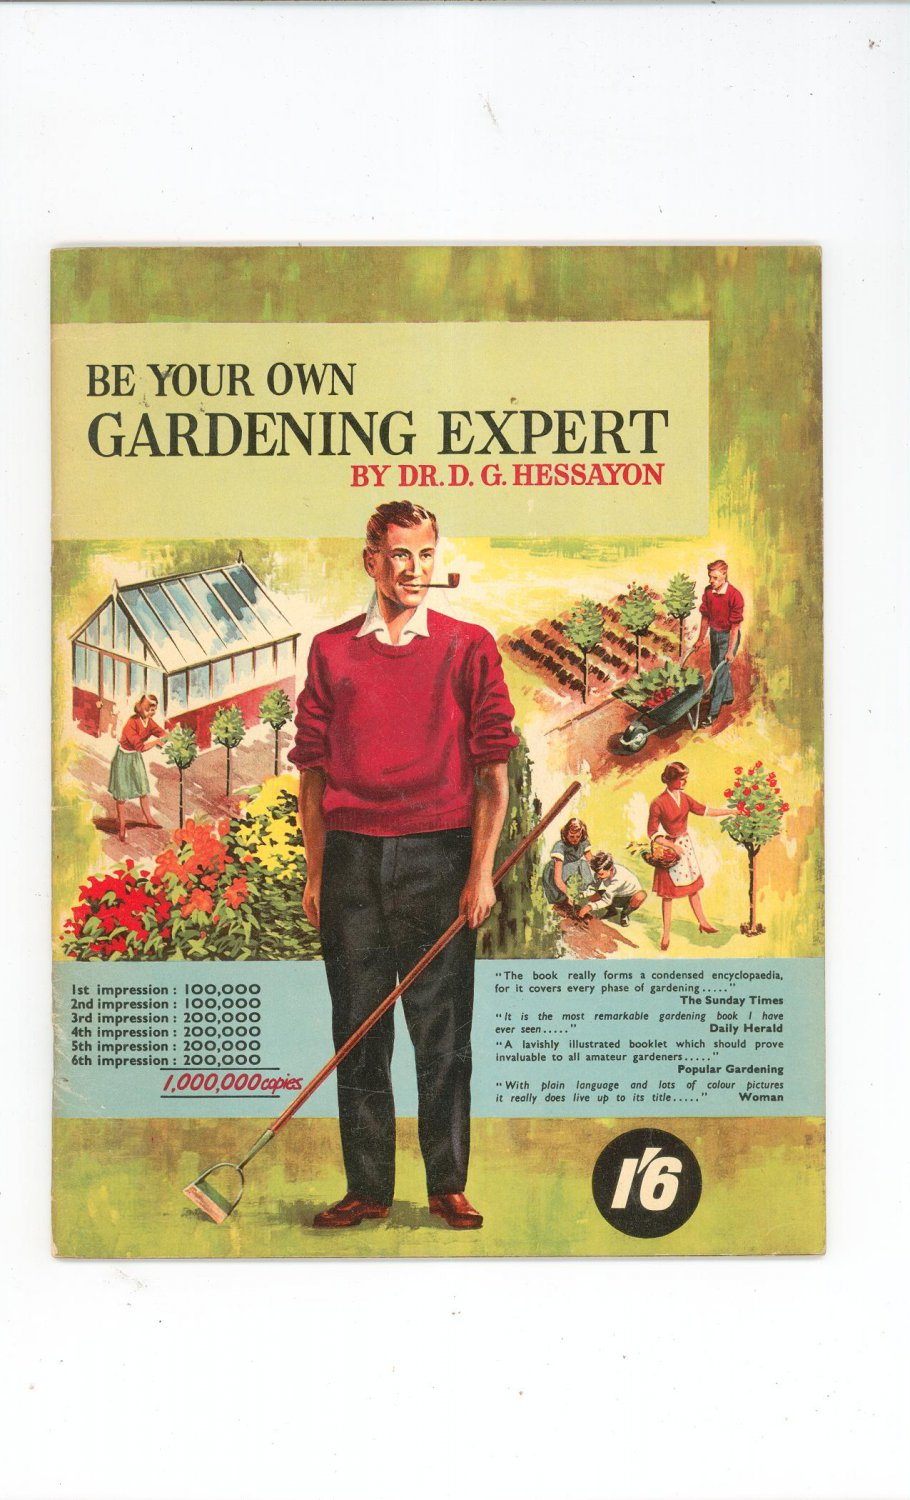 the garden expert by dr dg hessayon The garden expert by dg hessayon by dg hessayon the lawn expert: the world's best-selling book on - press what the critics say invest in the lawn expert by dr d.